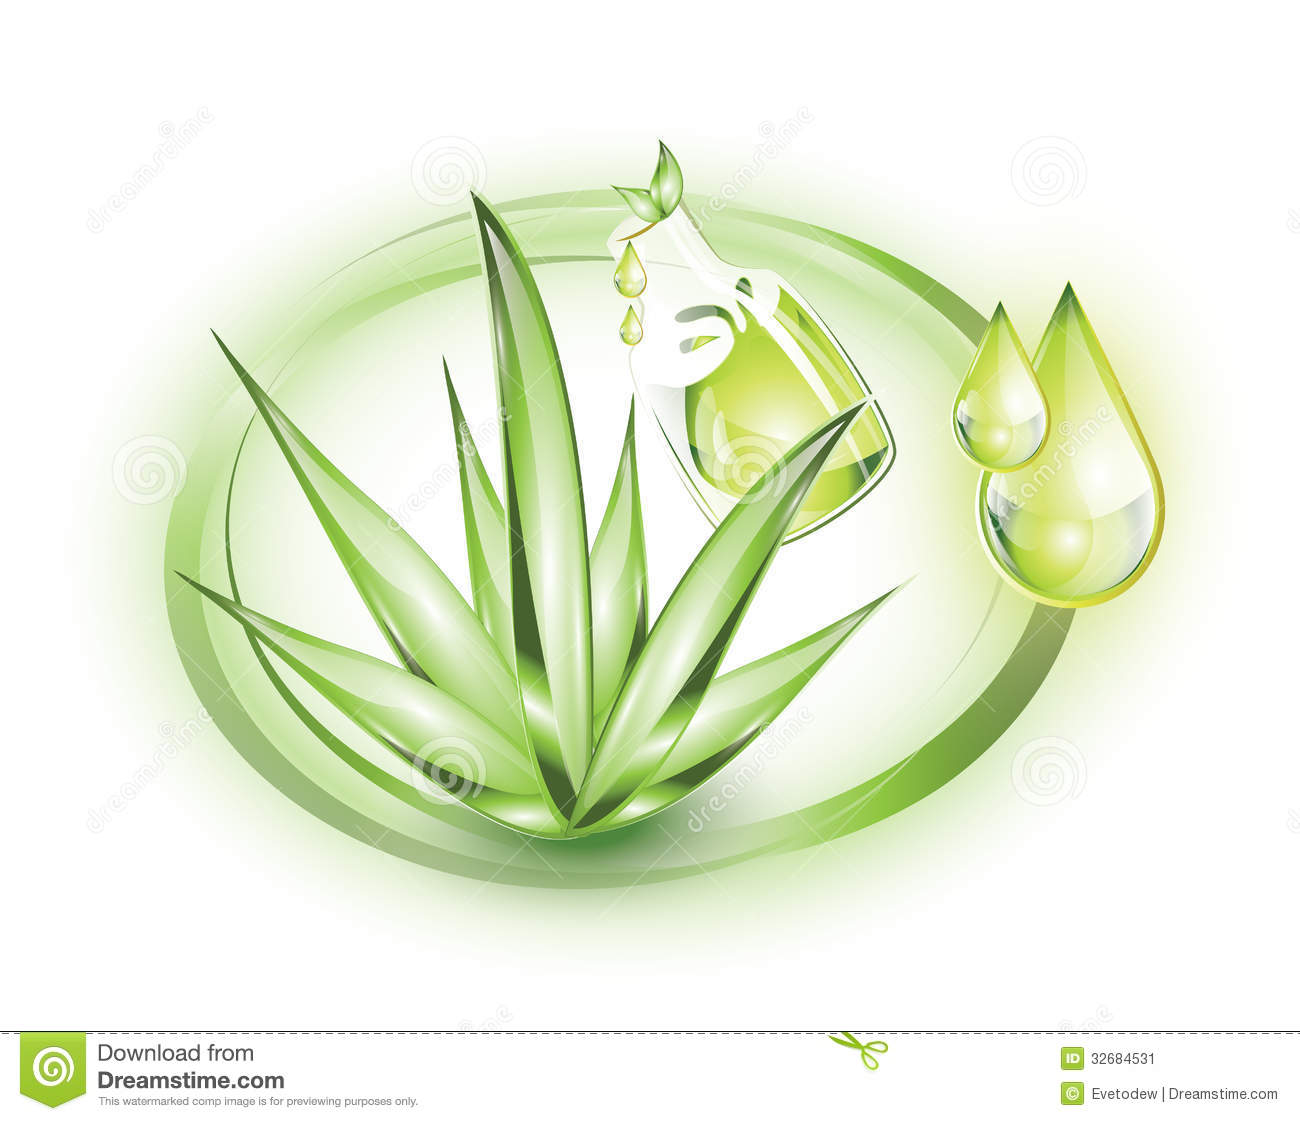 Aloe vera plant with extract from it in a bottle, in green circles.